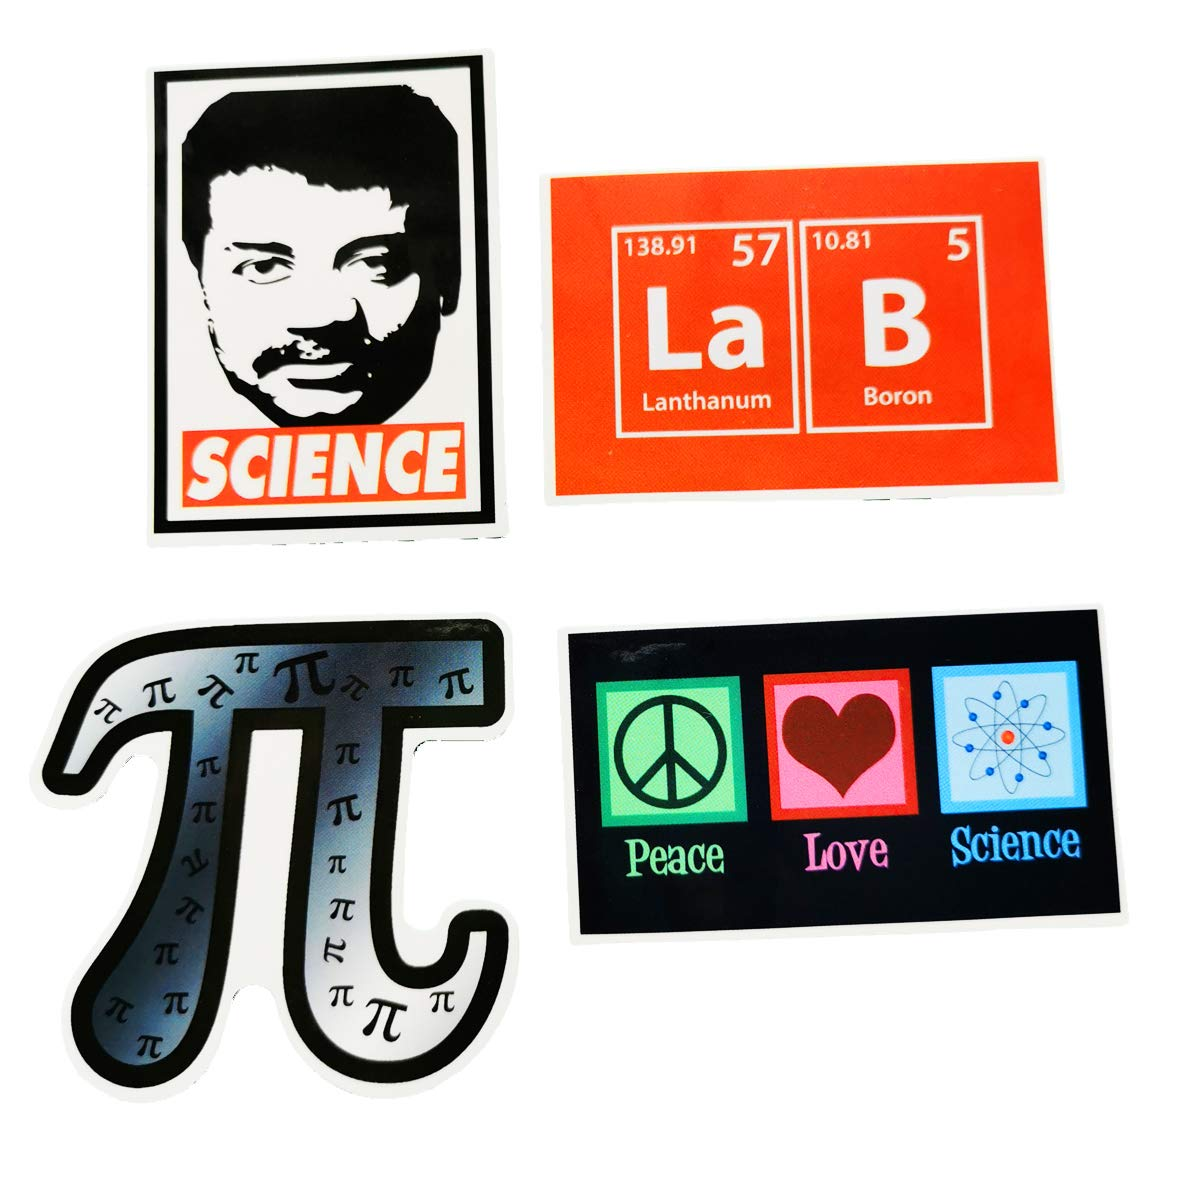 Lab Vinyl Science Experiments Lab Stickers Pack 50 Pcs Science Big Decals for Pack for Water Bottles Laptop Cute Tube Instrument Einstein Chemistry Maths for Kids,Skateboard iPhone,Party